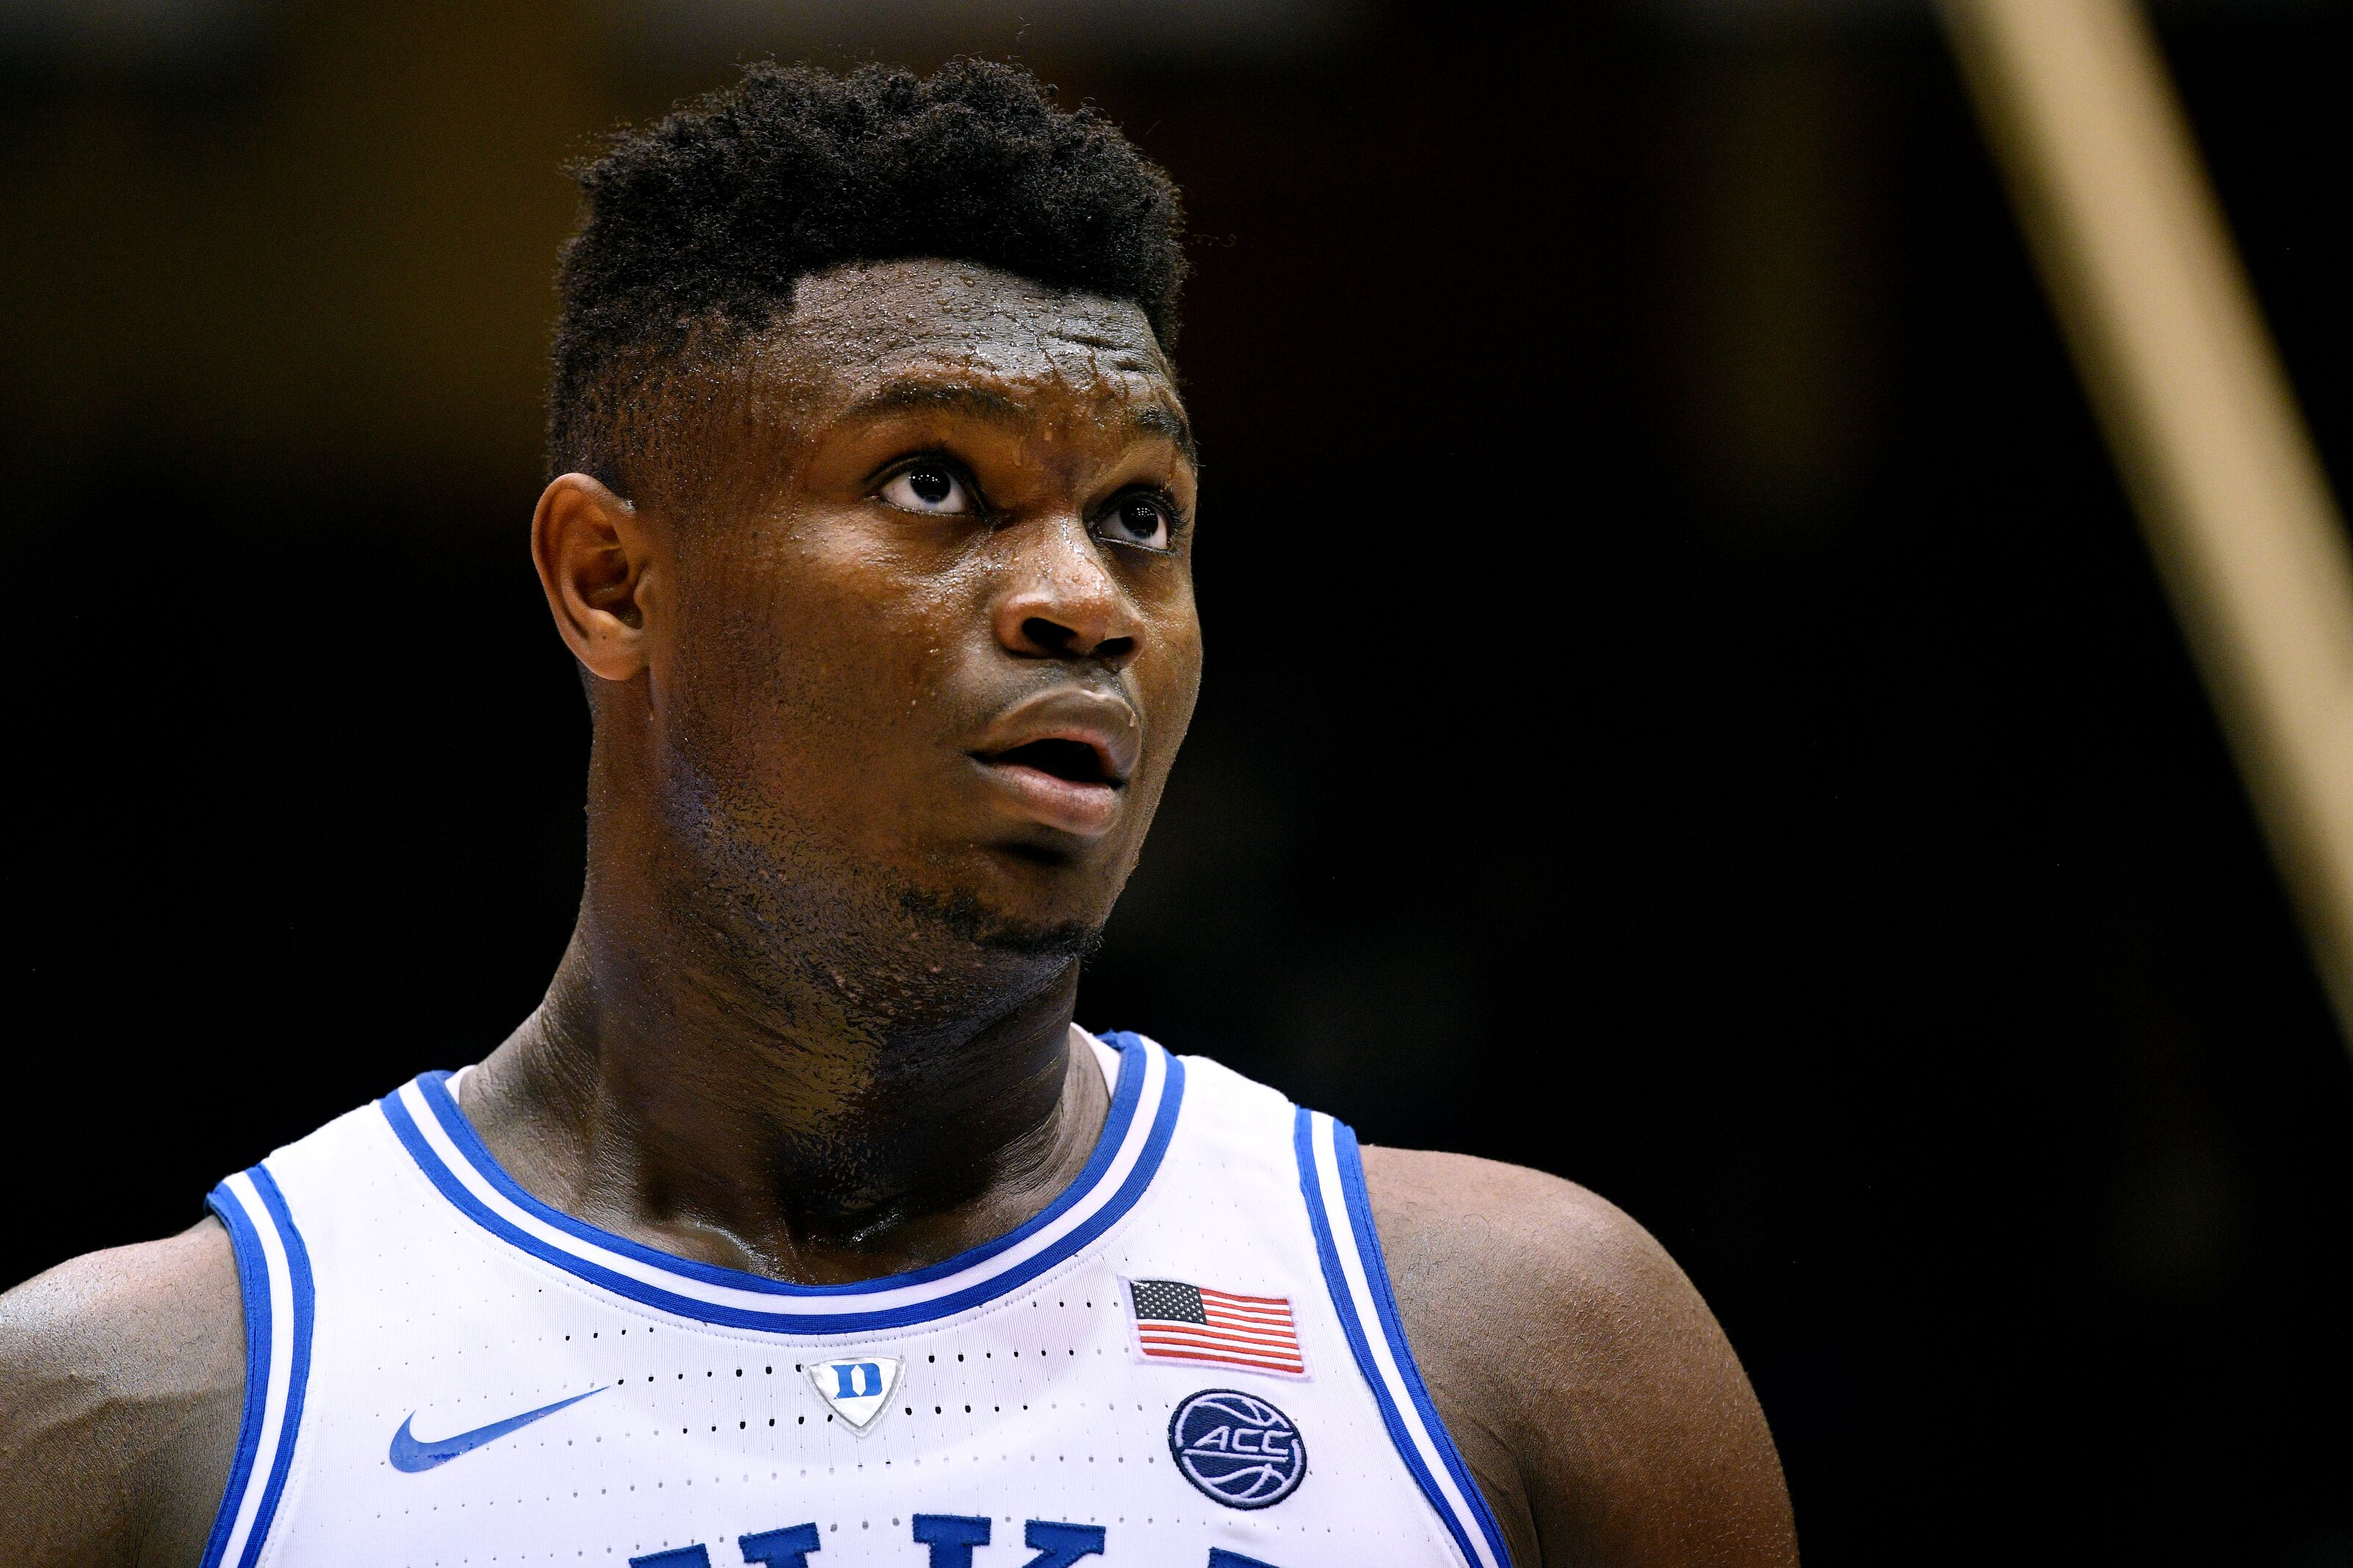 DURHAM, NC - FEBRUARY 05: Zion Williamson #1 of the Duke Blue Devils looks on during their game against the Boston College Eagles at Cameron Indoor Stadium on February 5, 2019 in Durham, North Carolina. Duke won 80-55. (Photo by Lance King/Getty Images)